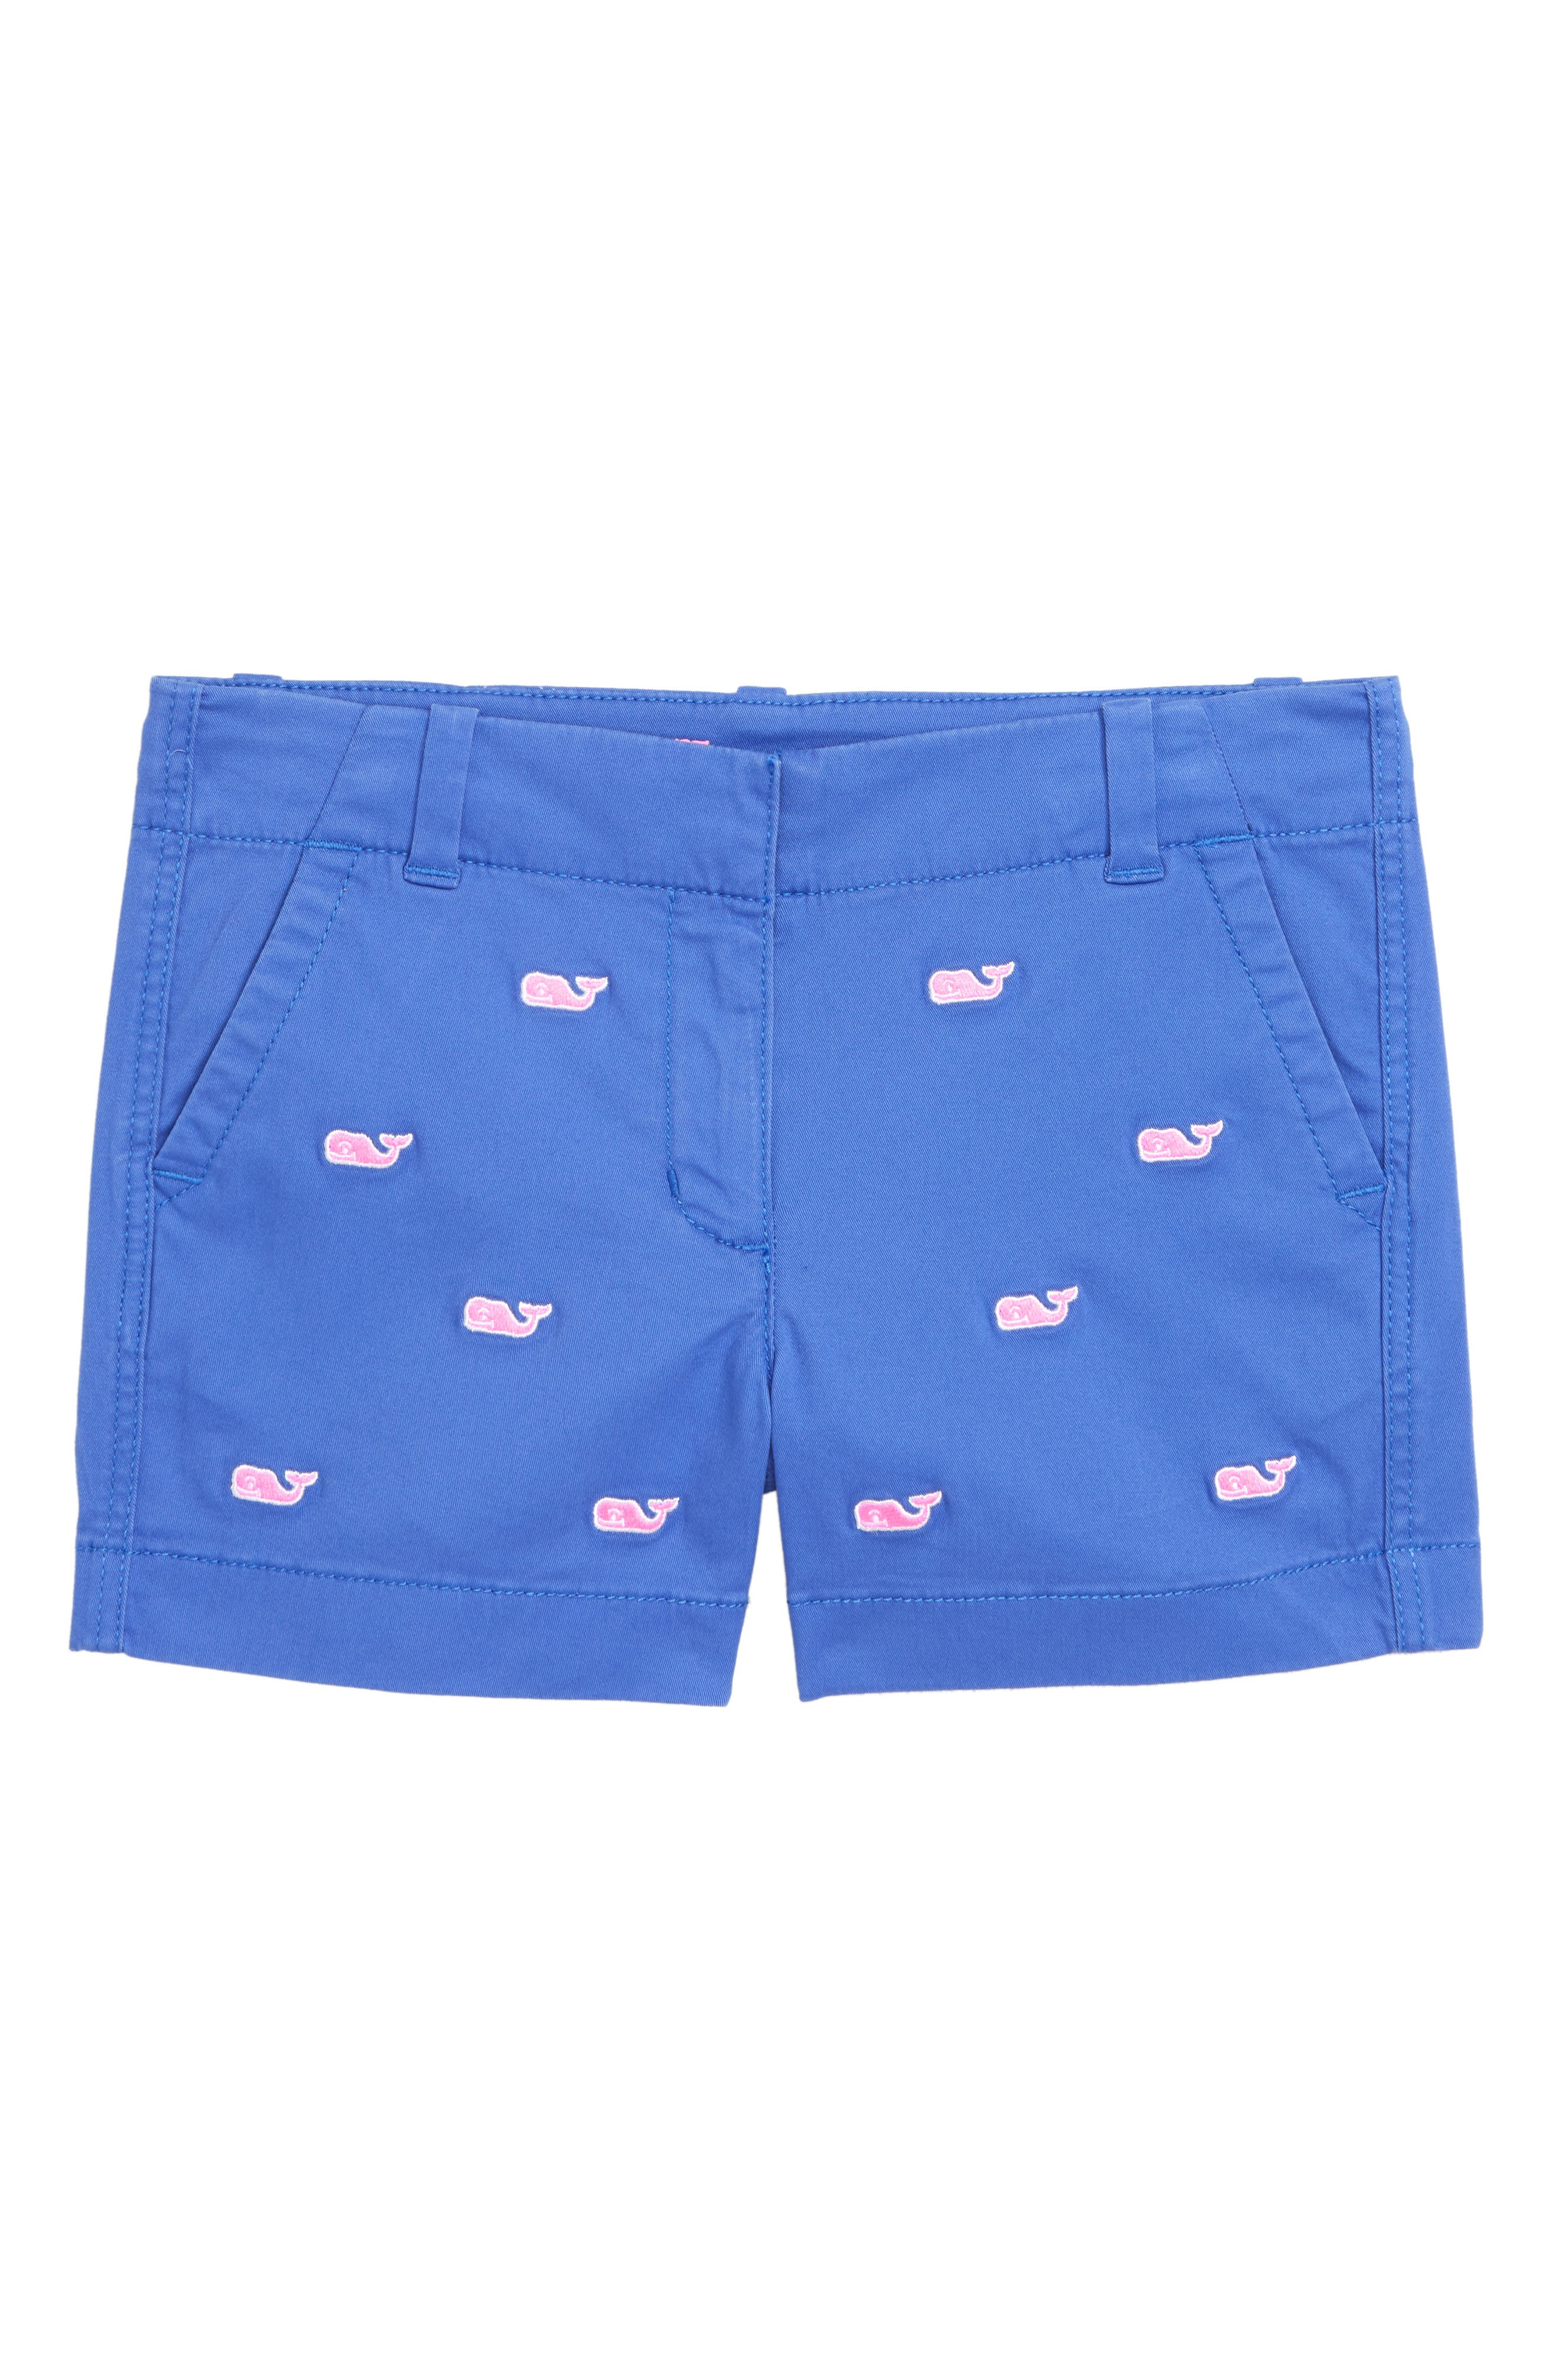 Whale Embroidered Chino Shorts,                             Main thumbnail 1, color,                             MARLIN